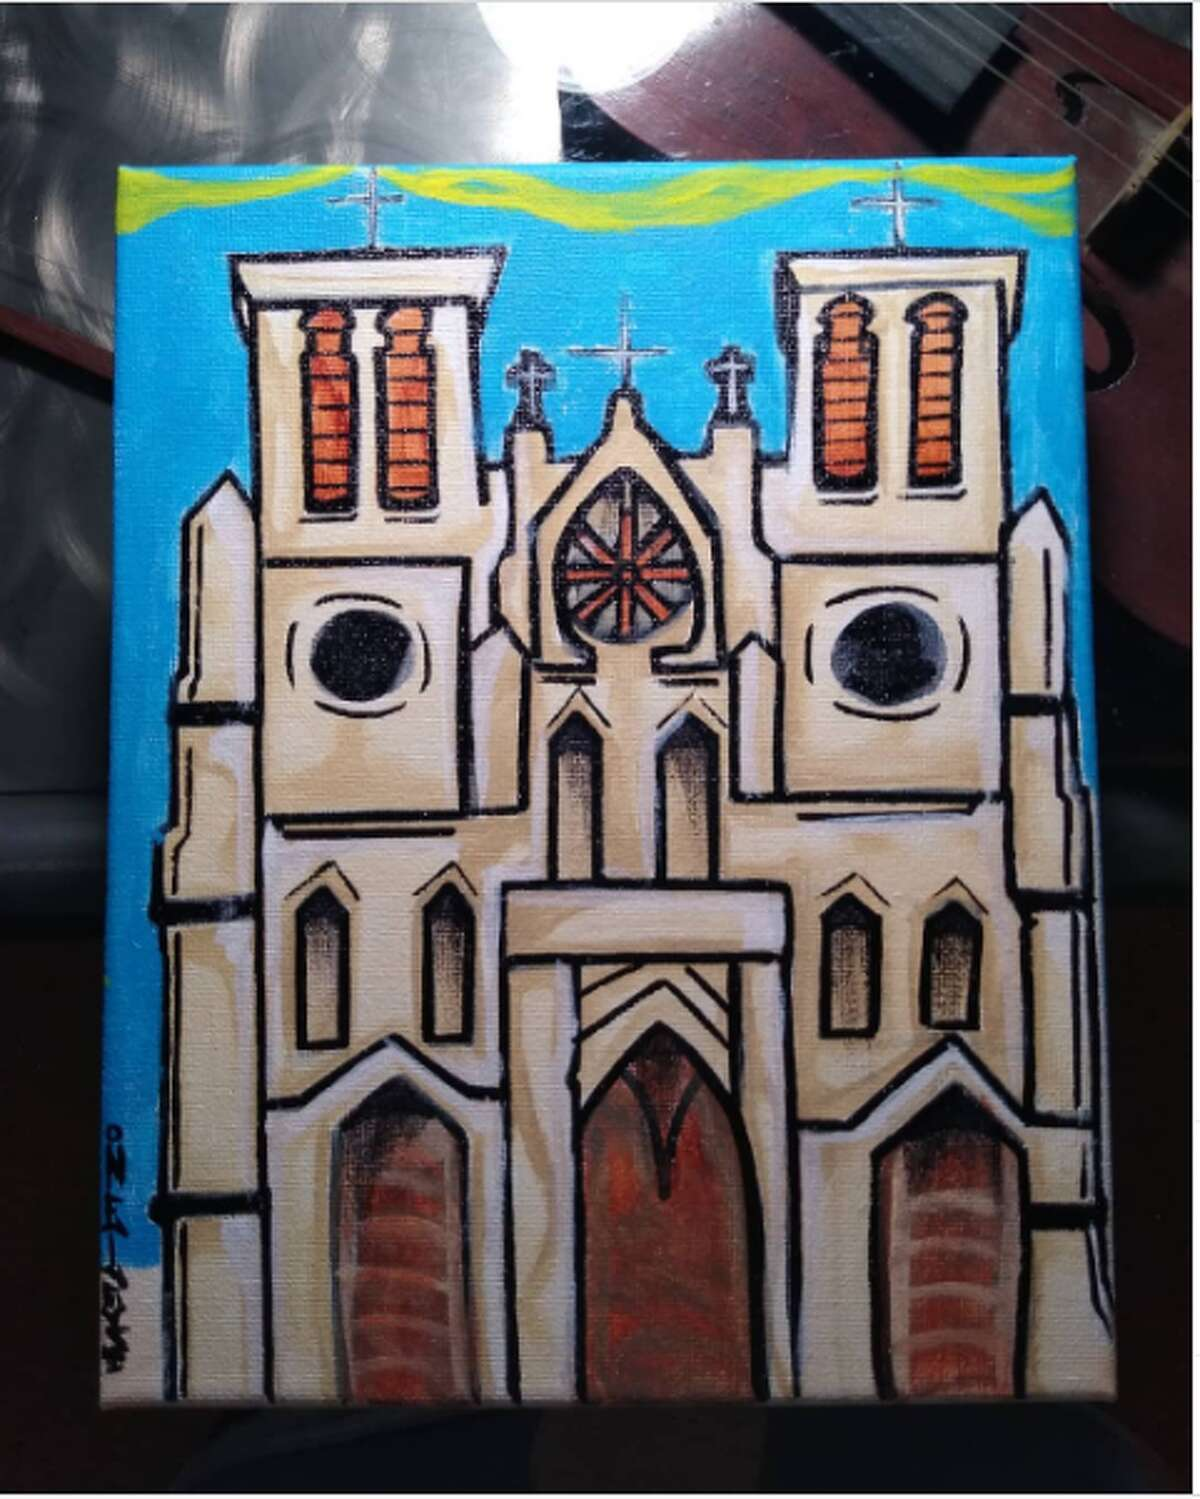 NELOS @whata_kingdom If you grew up appreciating the colorful aesthetic of tagging around town, local artist Nelos will hit you in the feels. With bright tagging and paintings of Alamo City landmarks, his feed will be a nice dose of nostalgia.